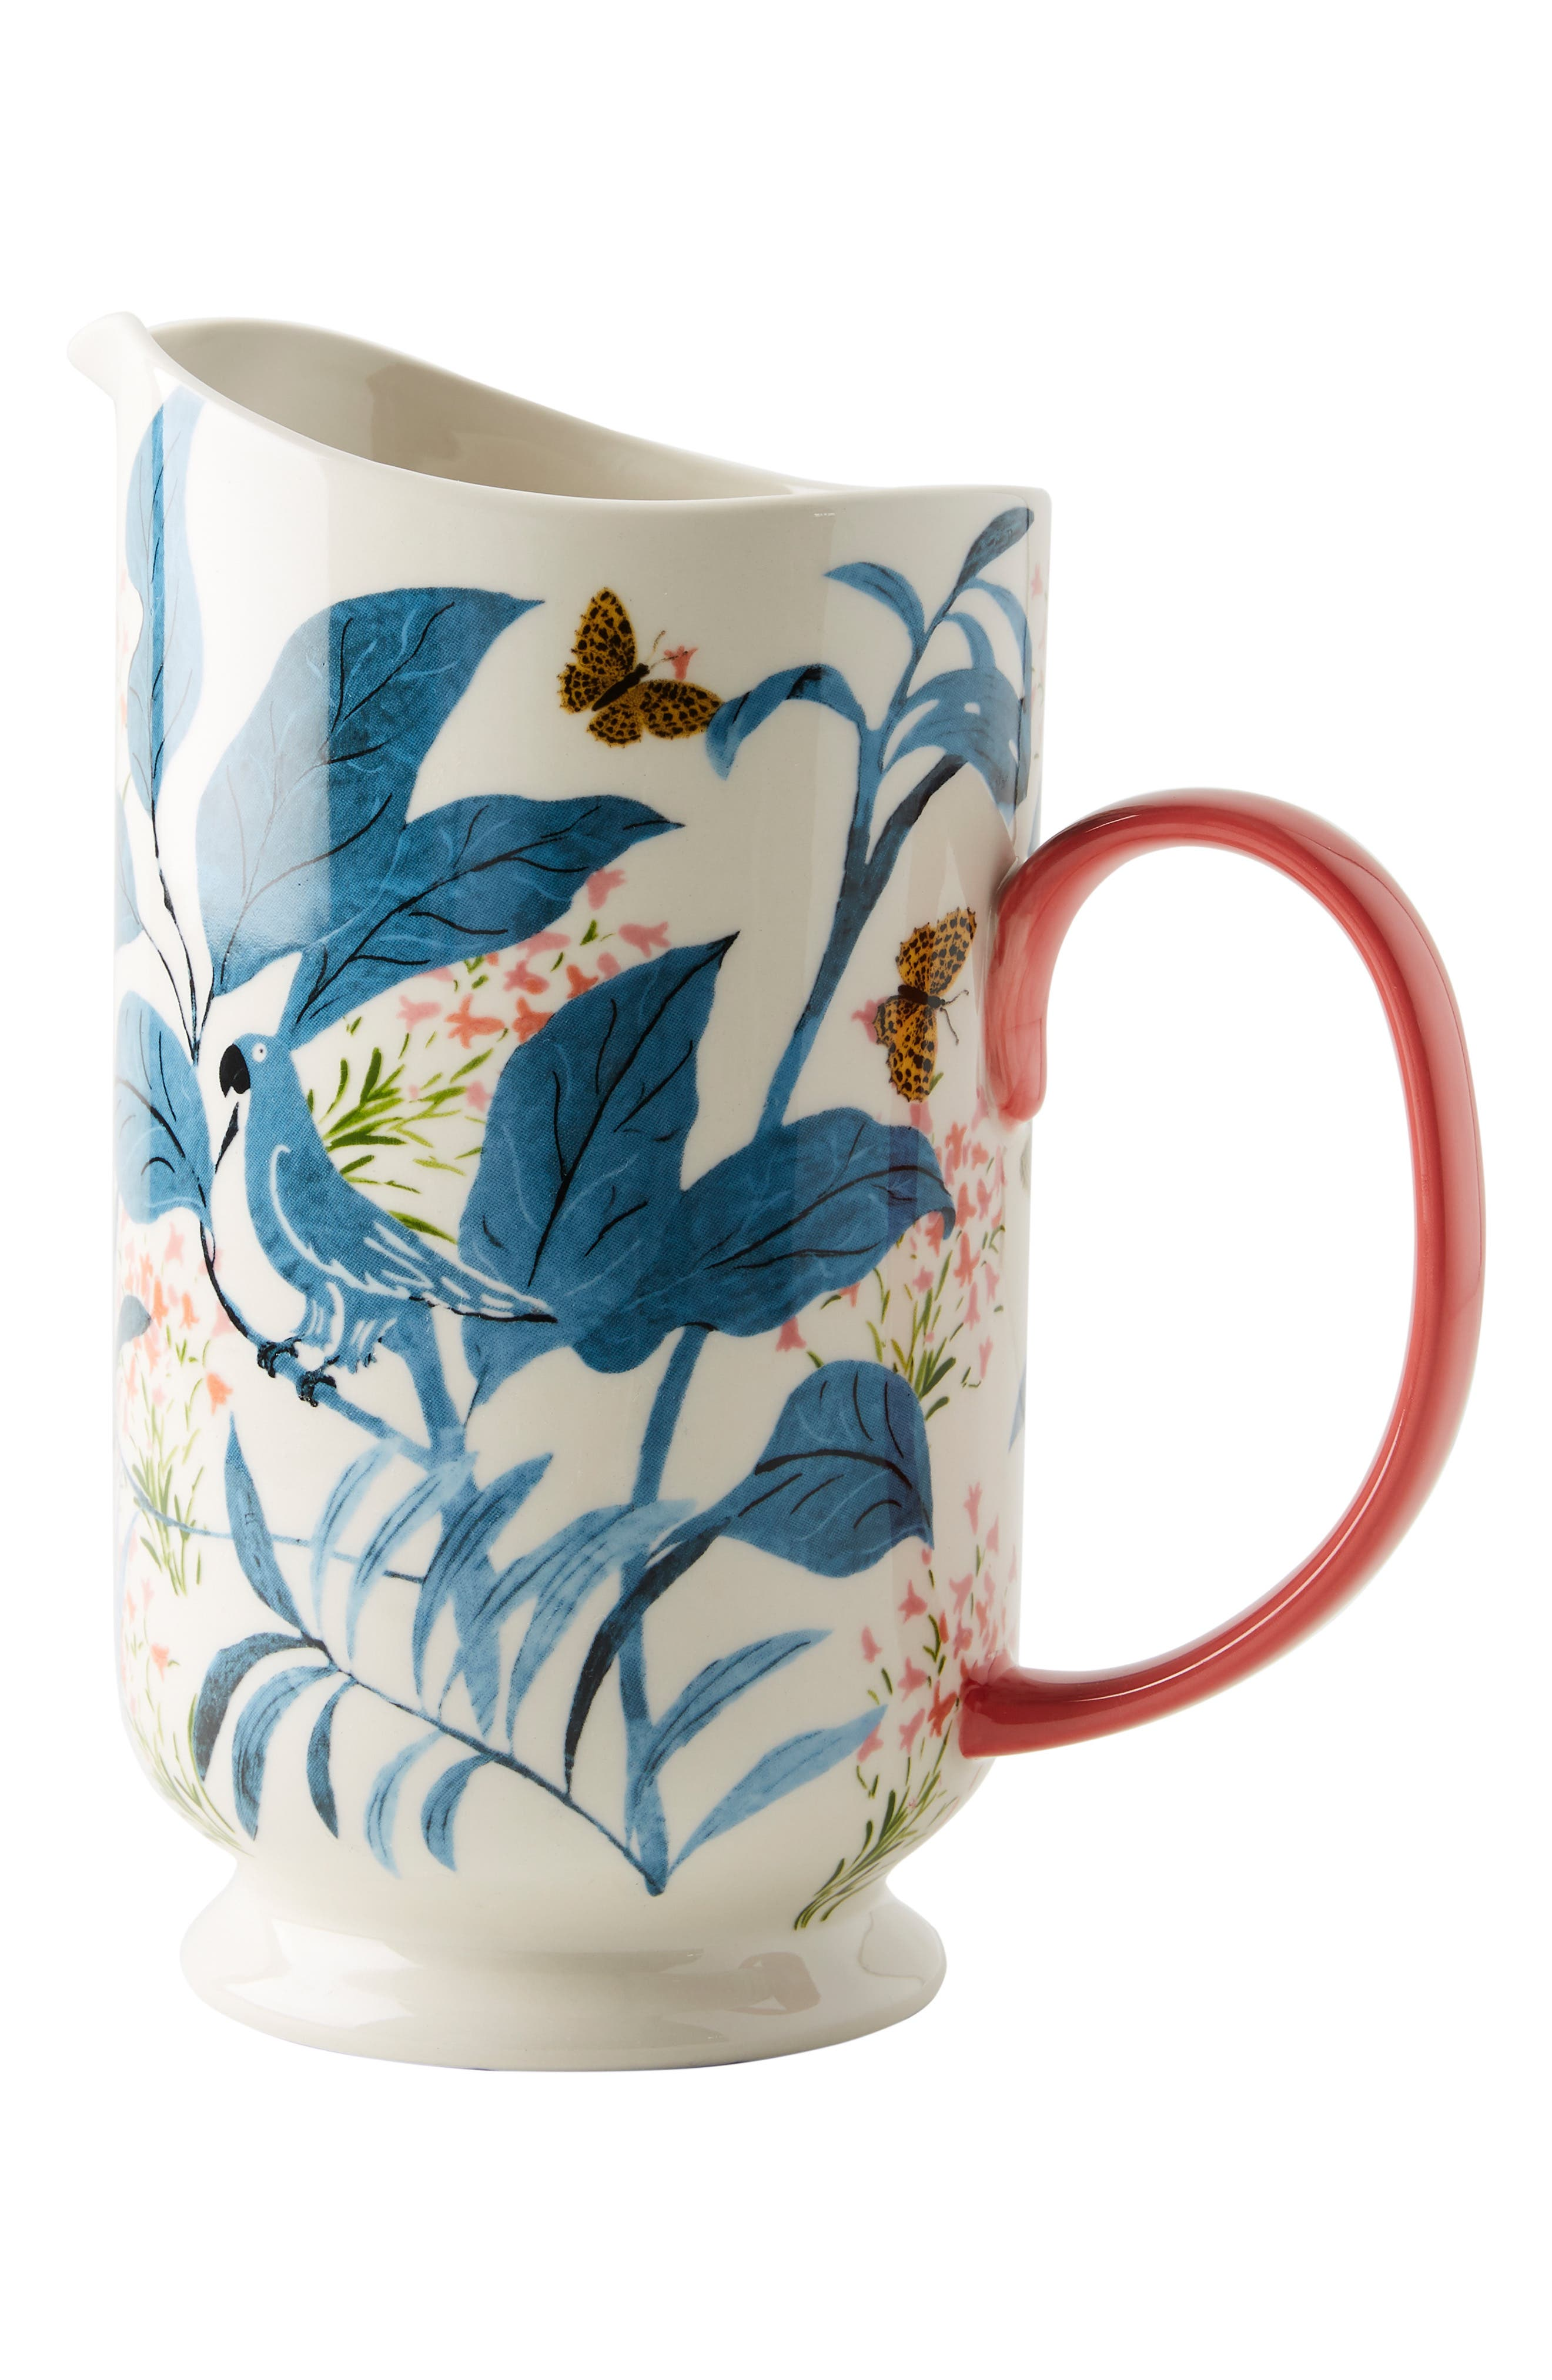 ANTHROPOLOGIE,                             Paule Marrot Butterfly Pitcher,                             Alternate thumbnail 5, color,                             BLUE